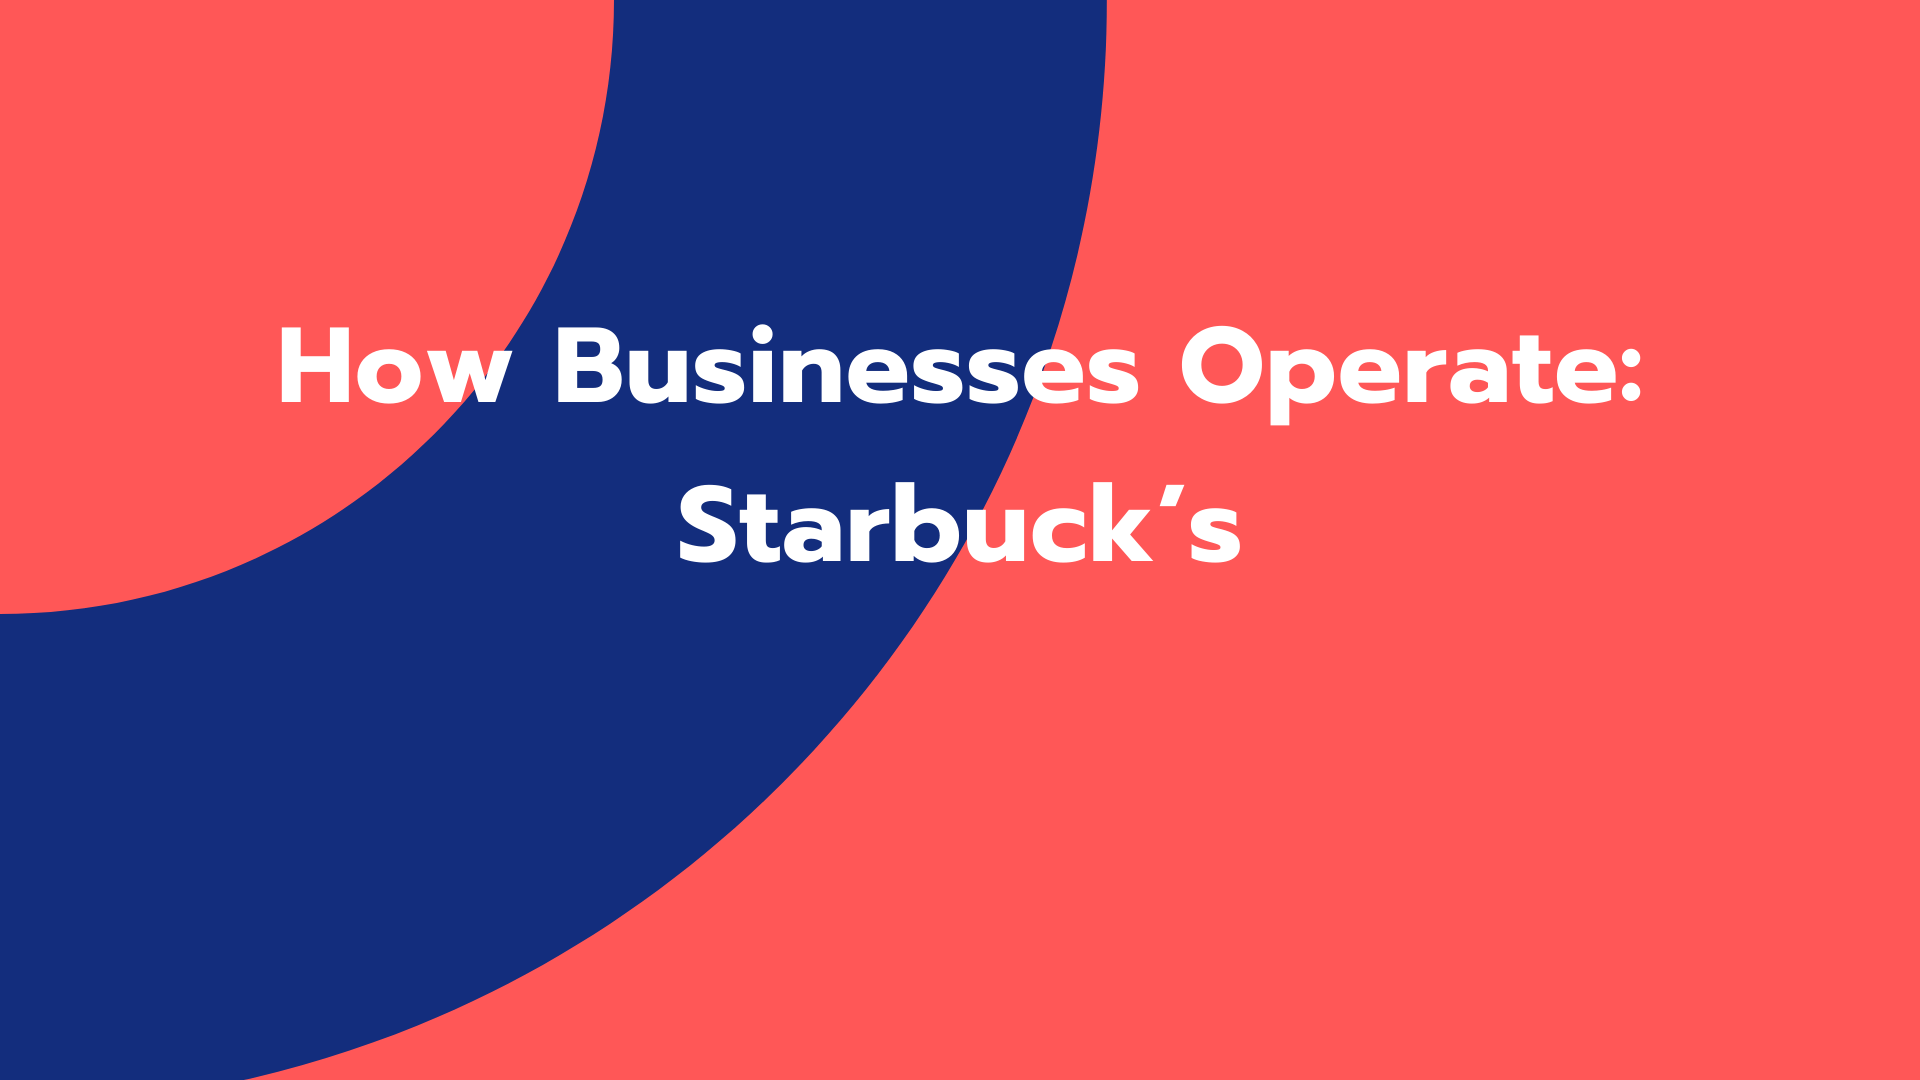 How Businesses Operate: Starbuck's